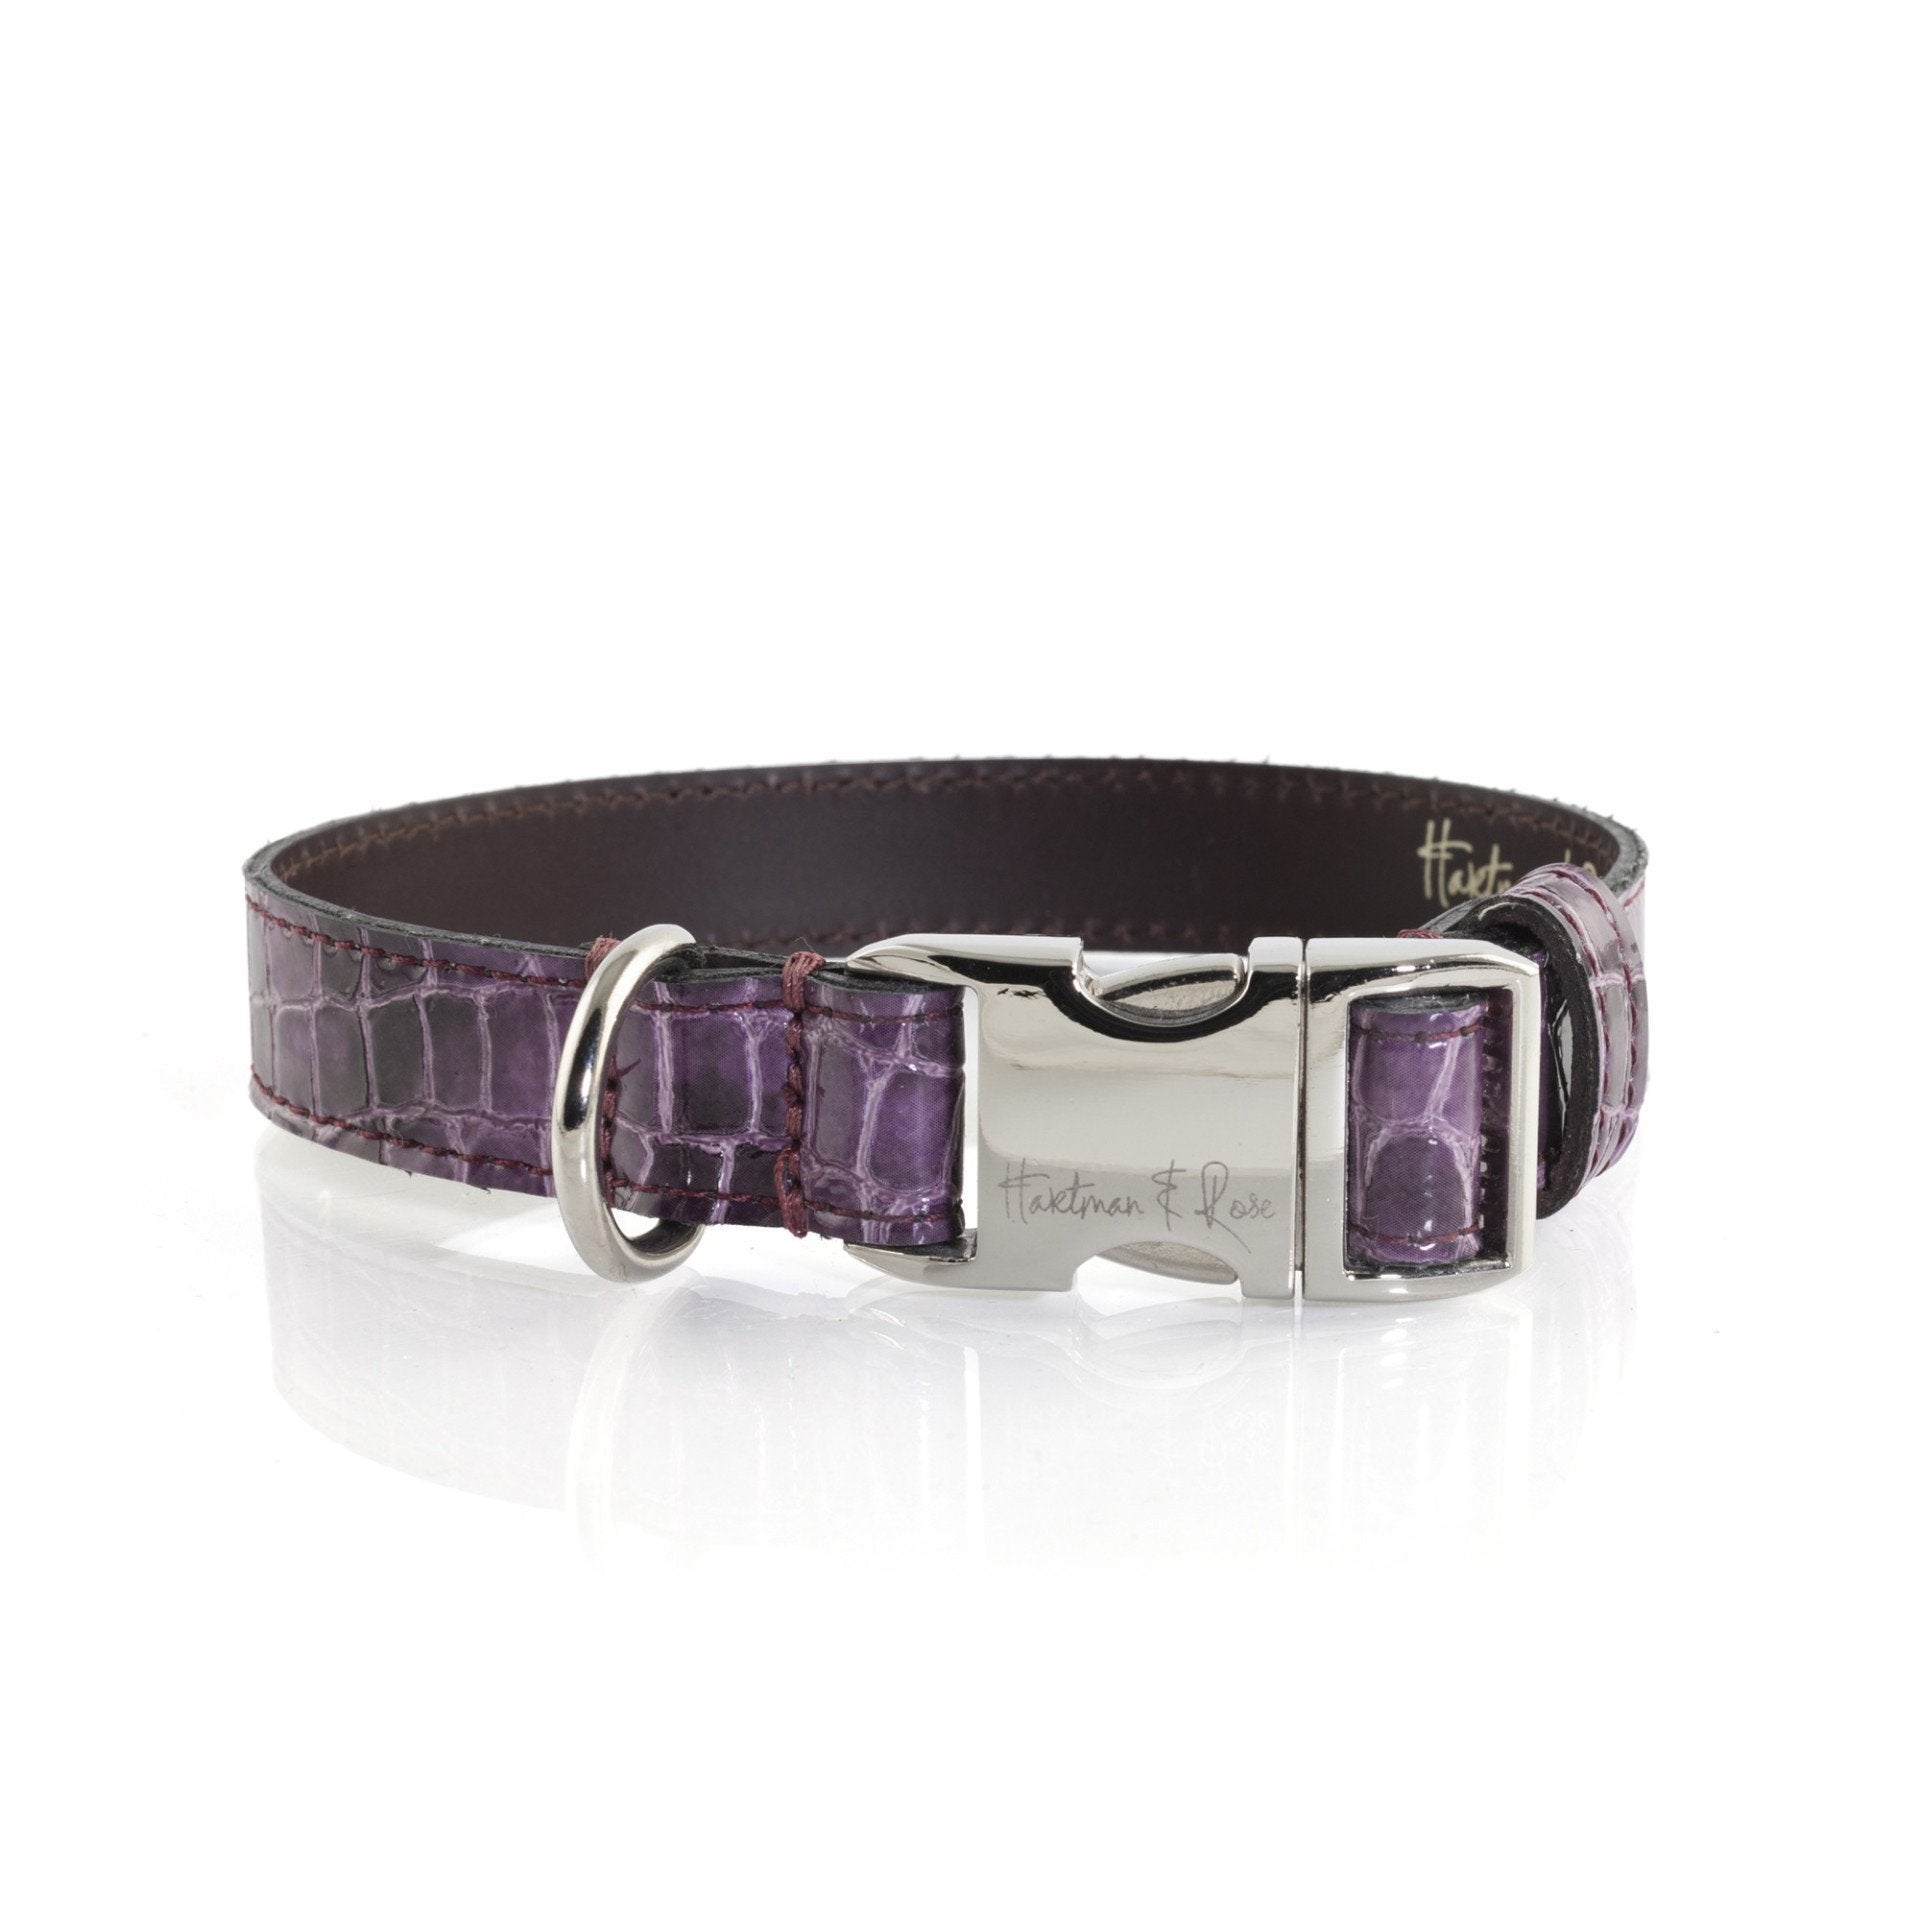 Hartman & Rose Contemporary Purple Leather Dog Collar